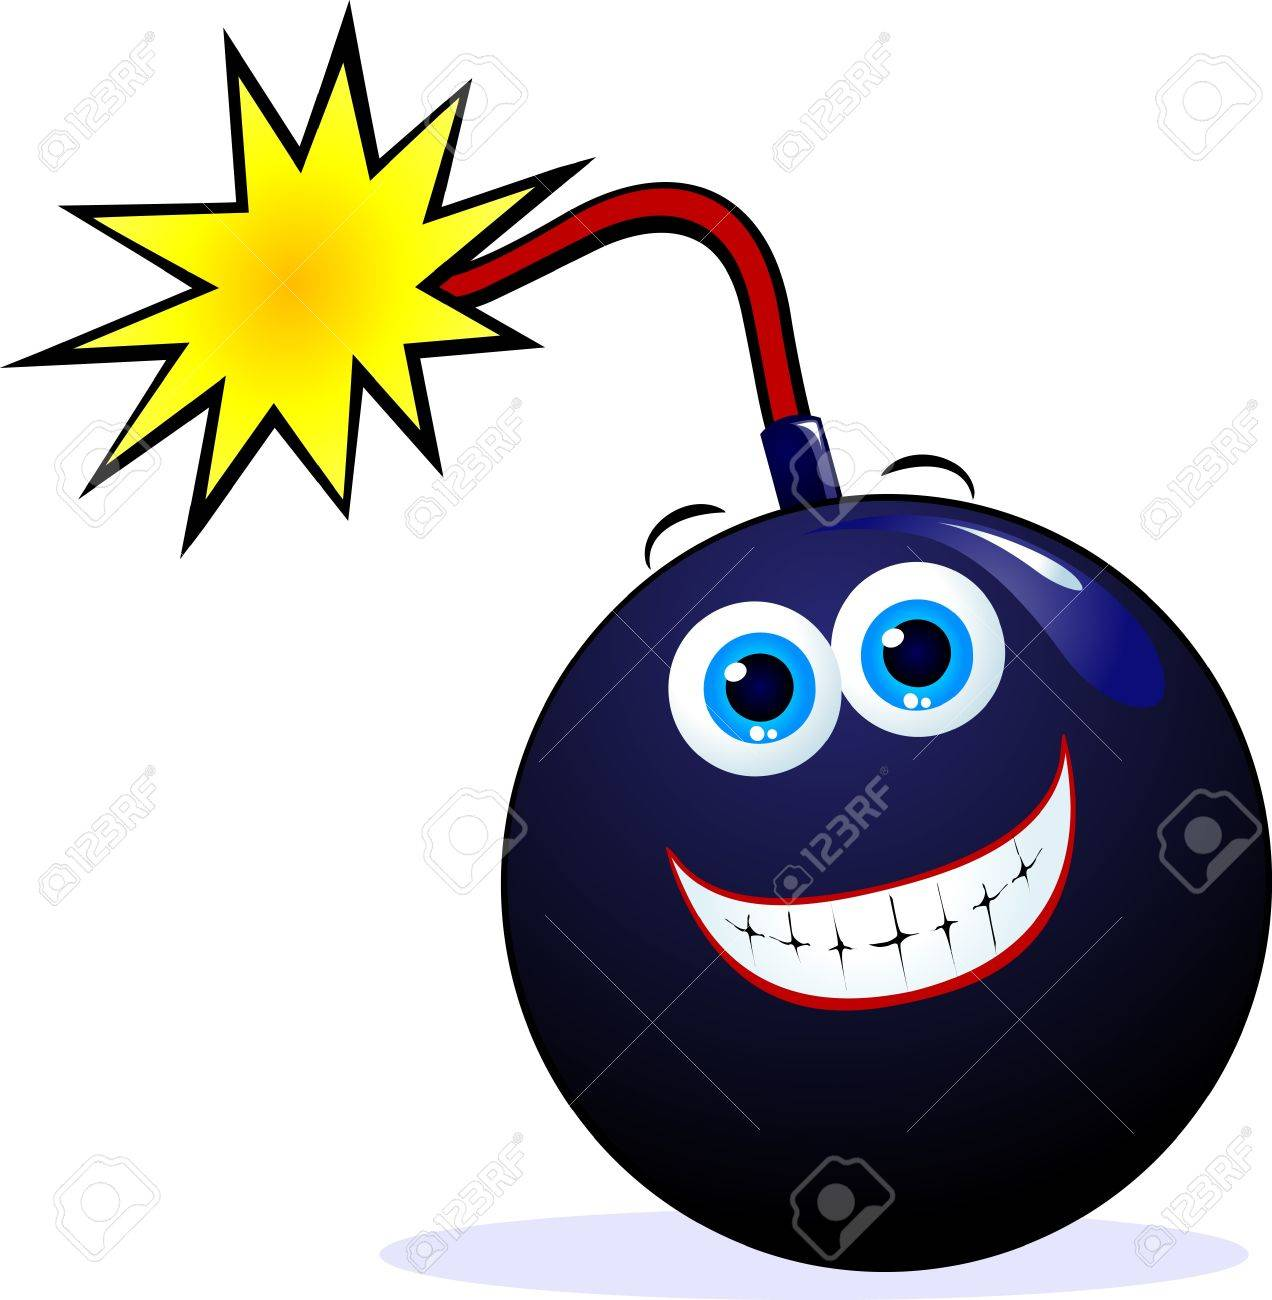 Image result for funny bomb